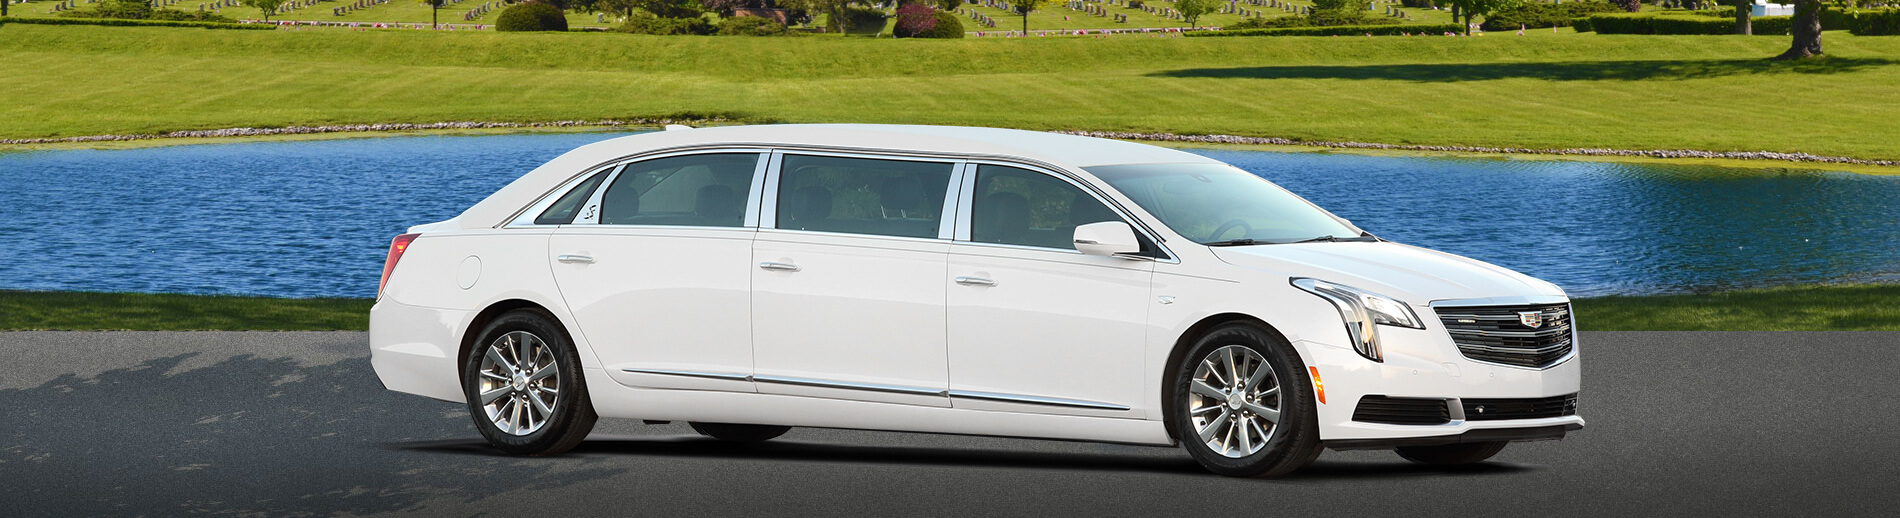 Miller Sons Exceptional Funeral Car Specialty Coach Sales